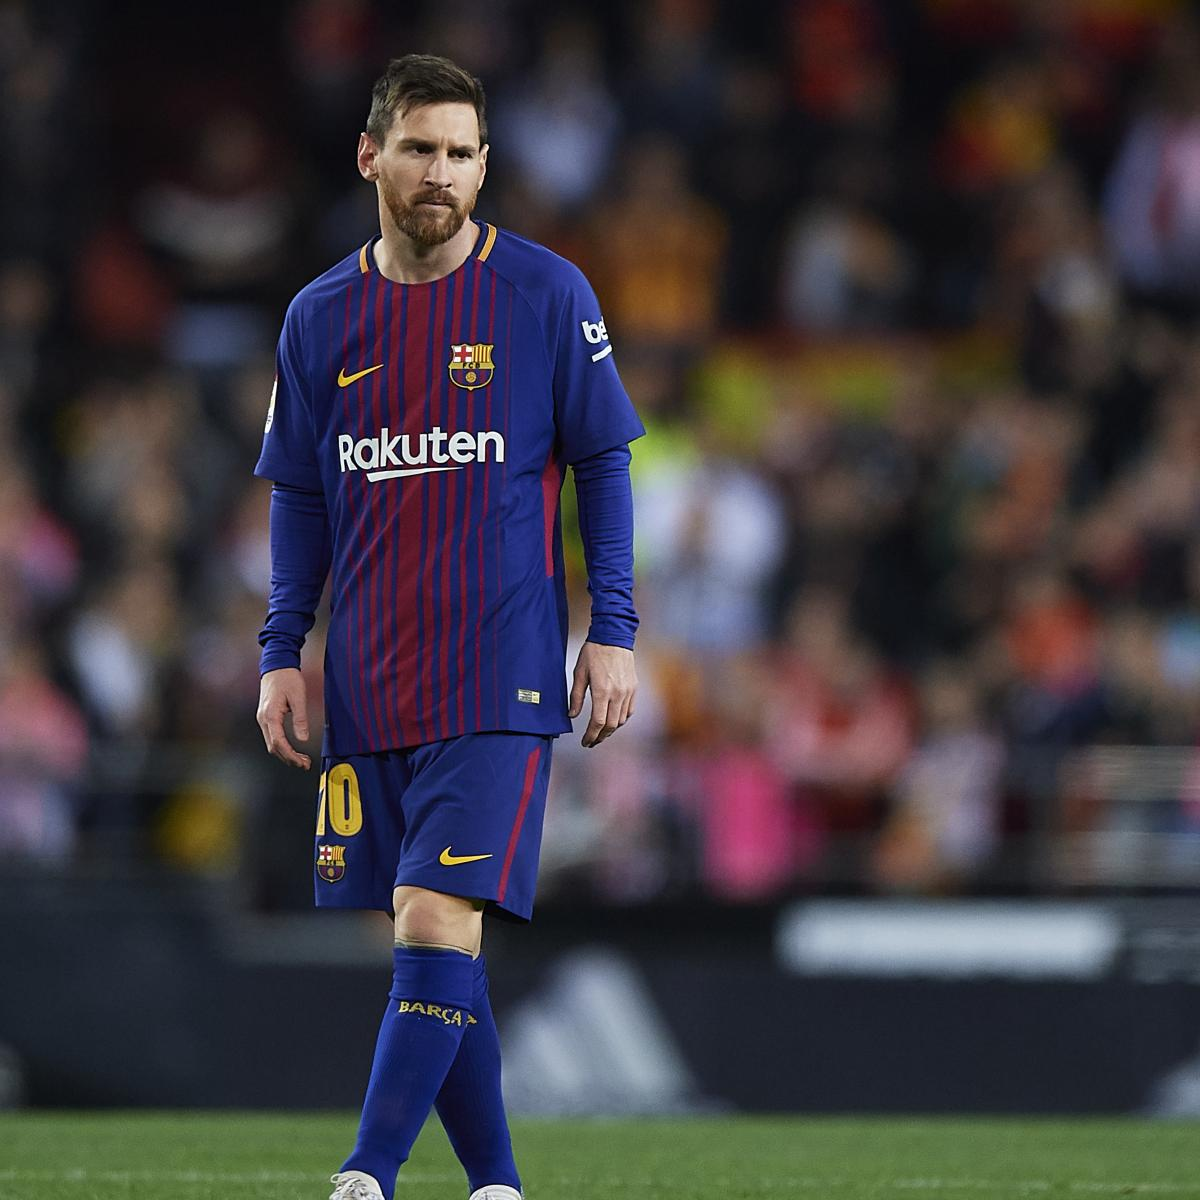 Celta Vigo Vs Barcelona Direct: Barcelona Vs. Celta Vigo: Team News, Preview, Live Stream